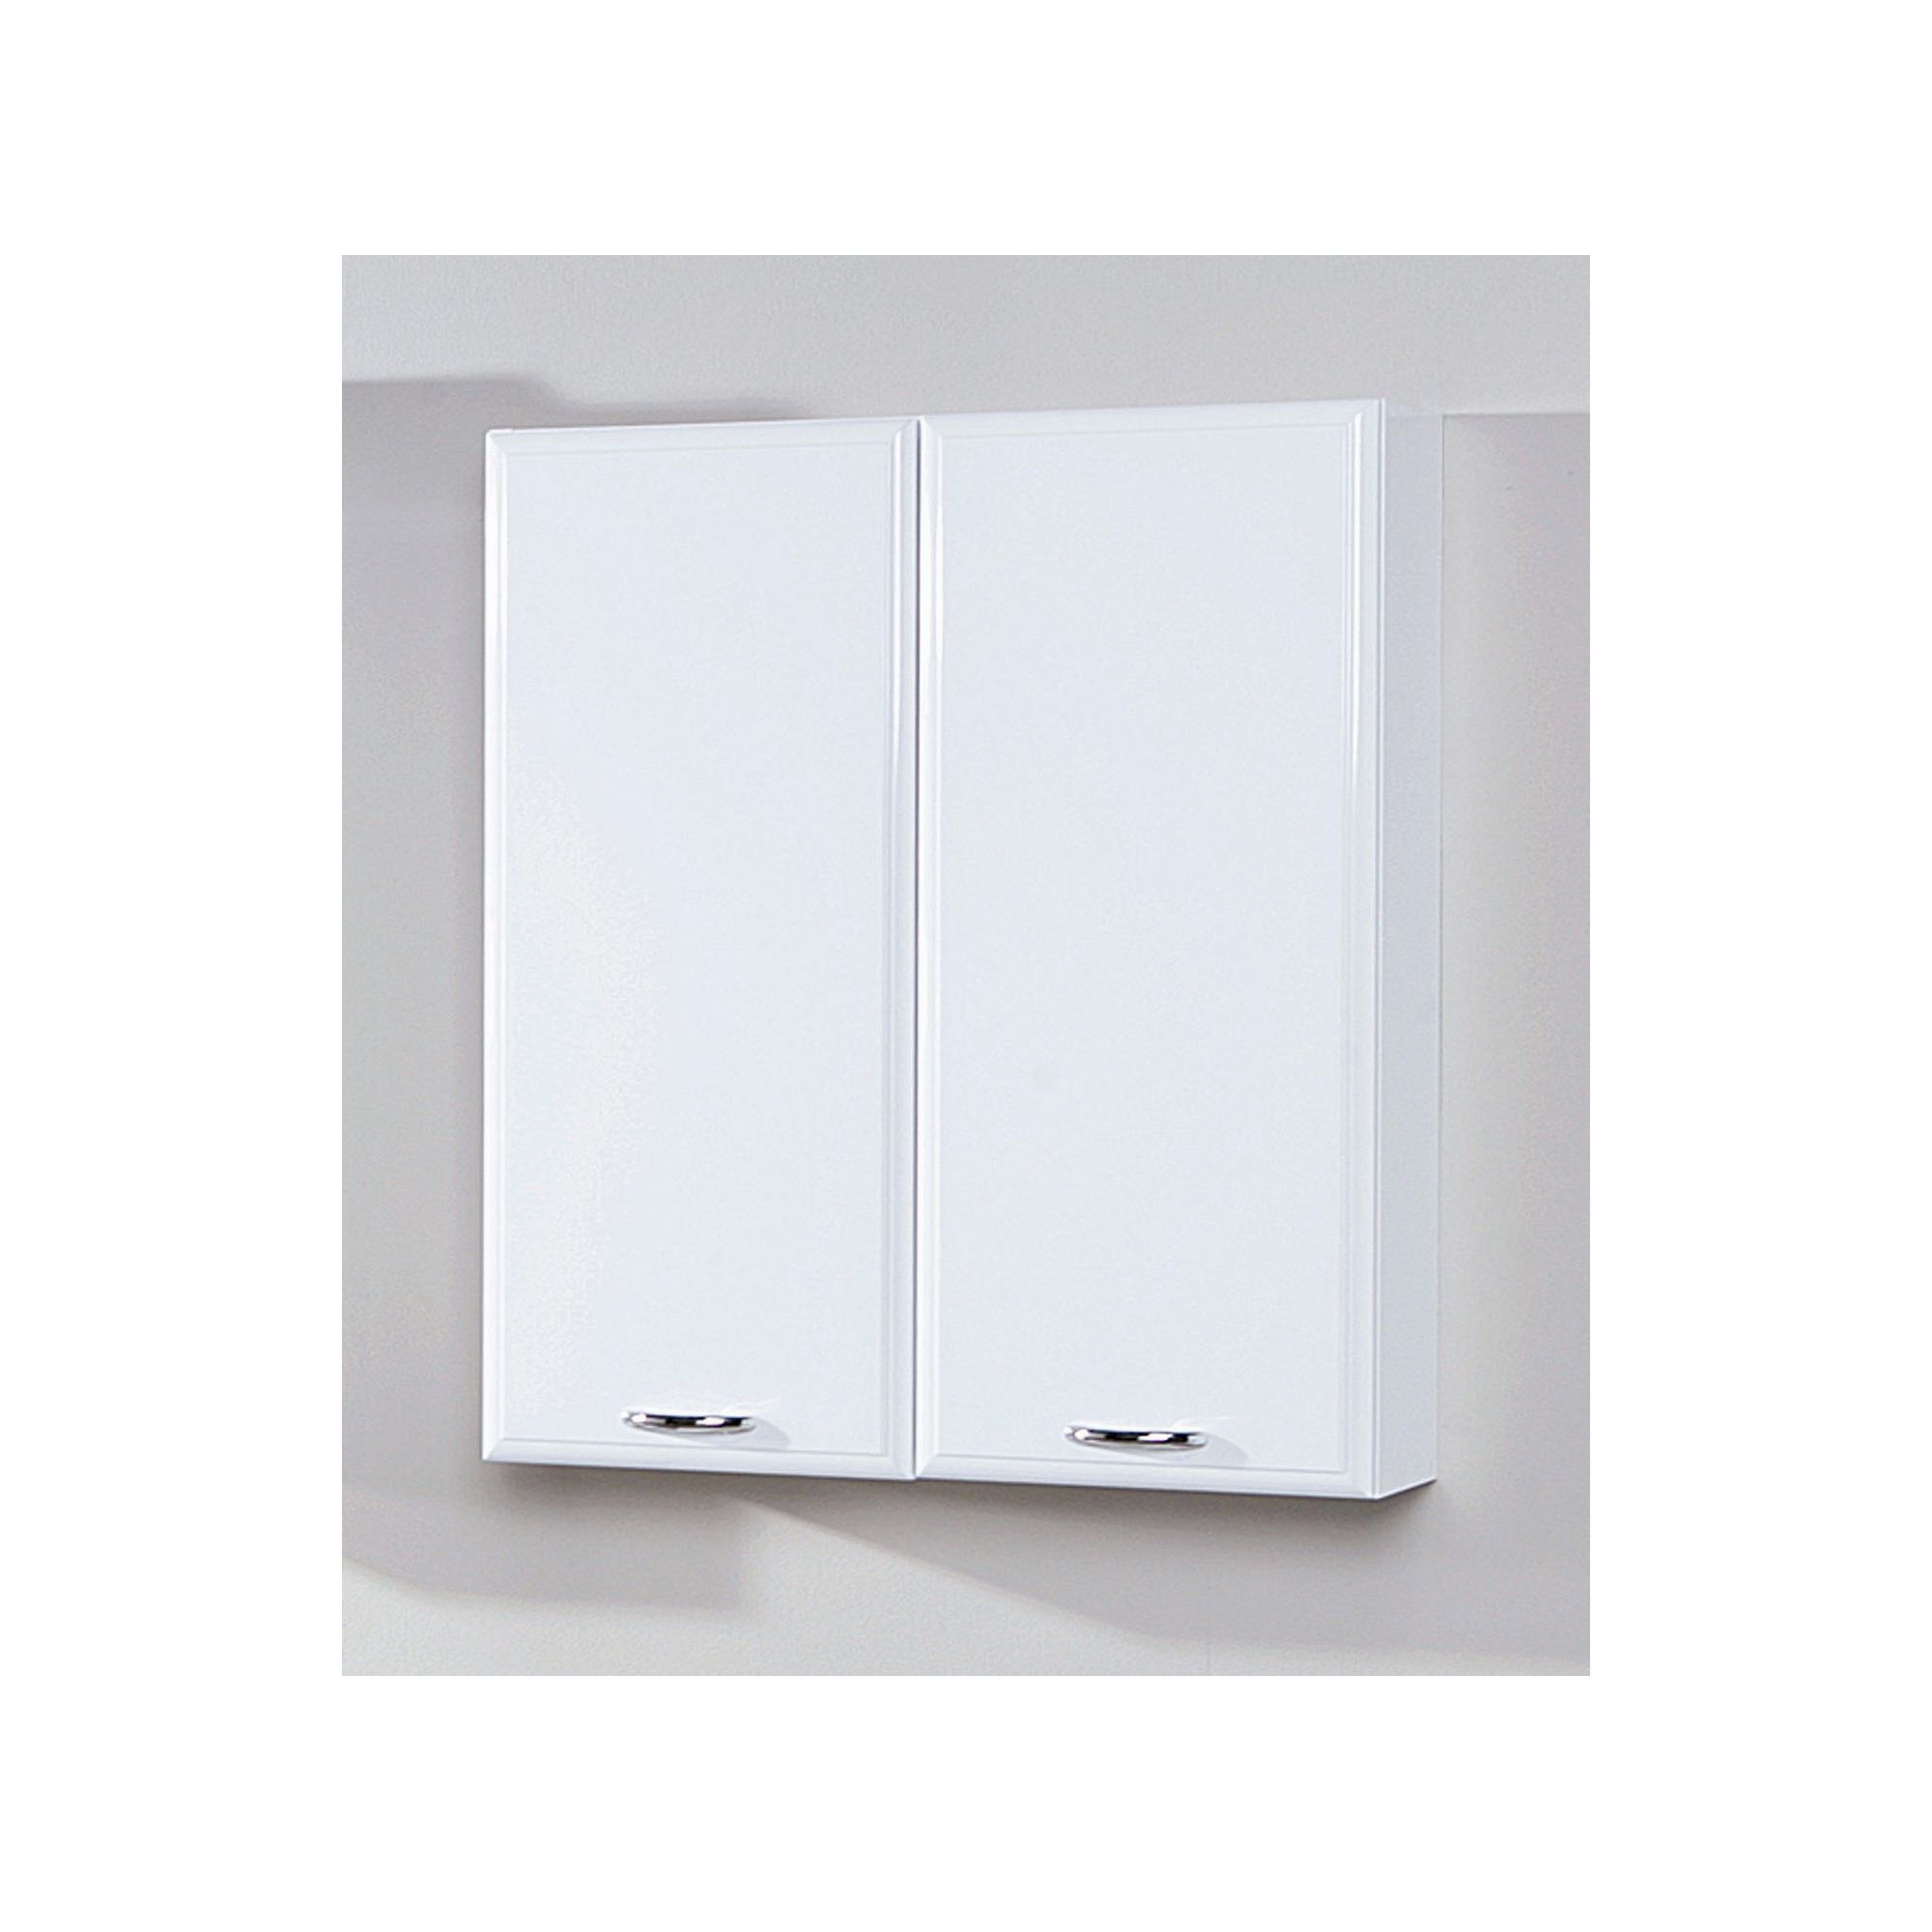 Home and garden bathroom hib denia sorrento small for Bathroom cabinets tesco